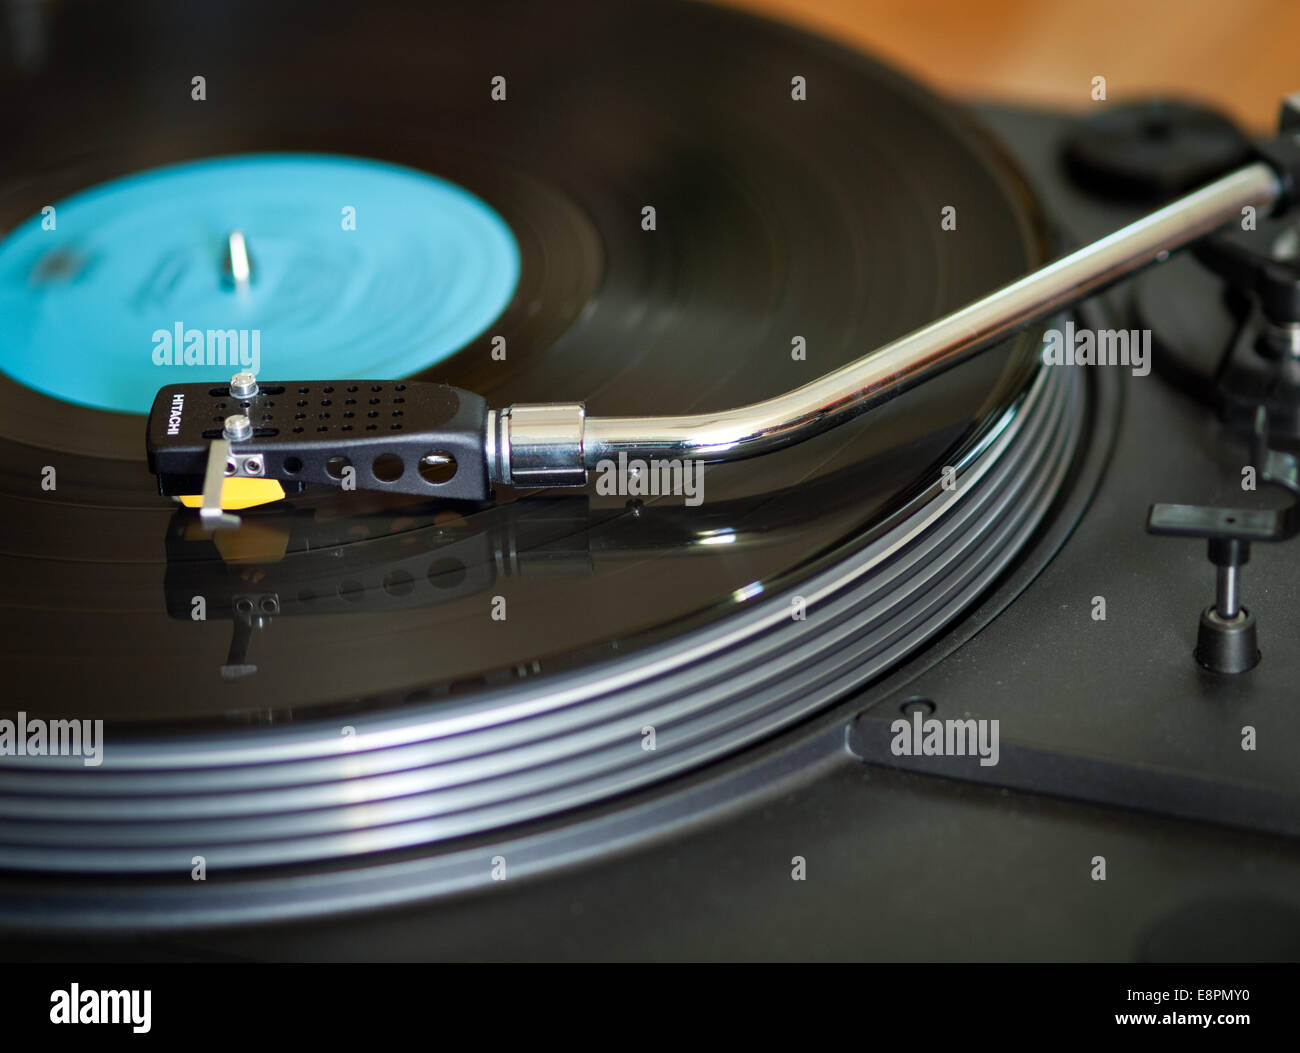 A vinyl record spins on a vintage, late 1970's Hitachi HT-350 turntable record player. - Stock Image